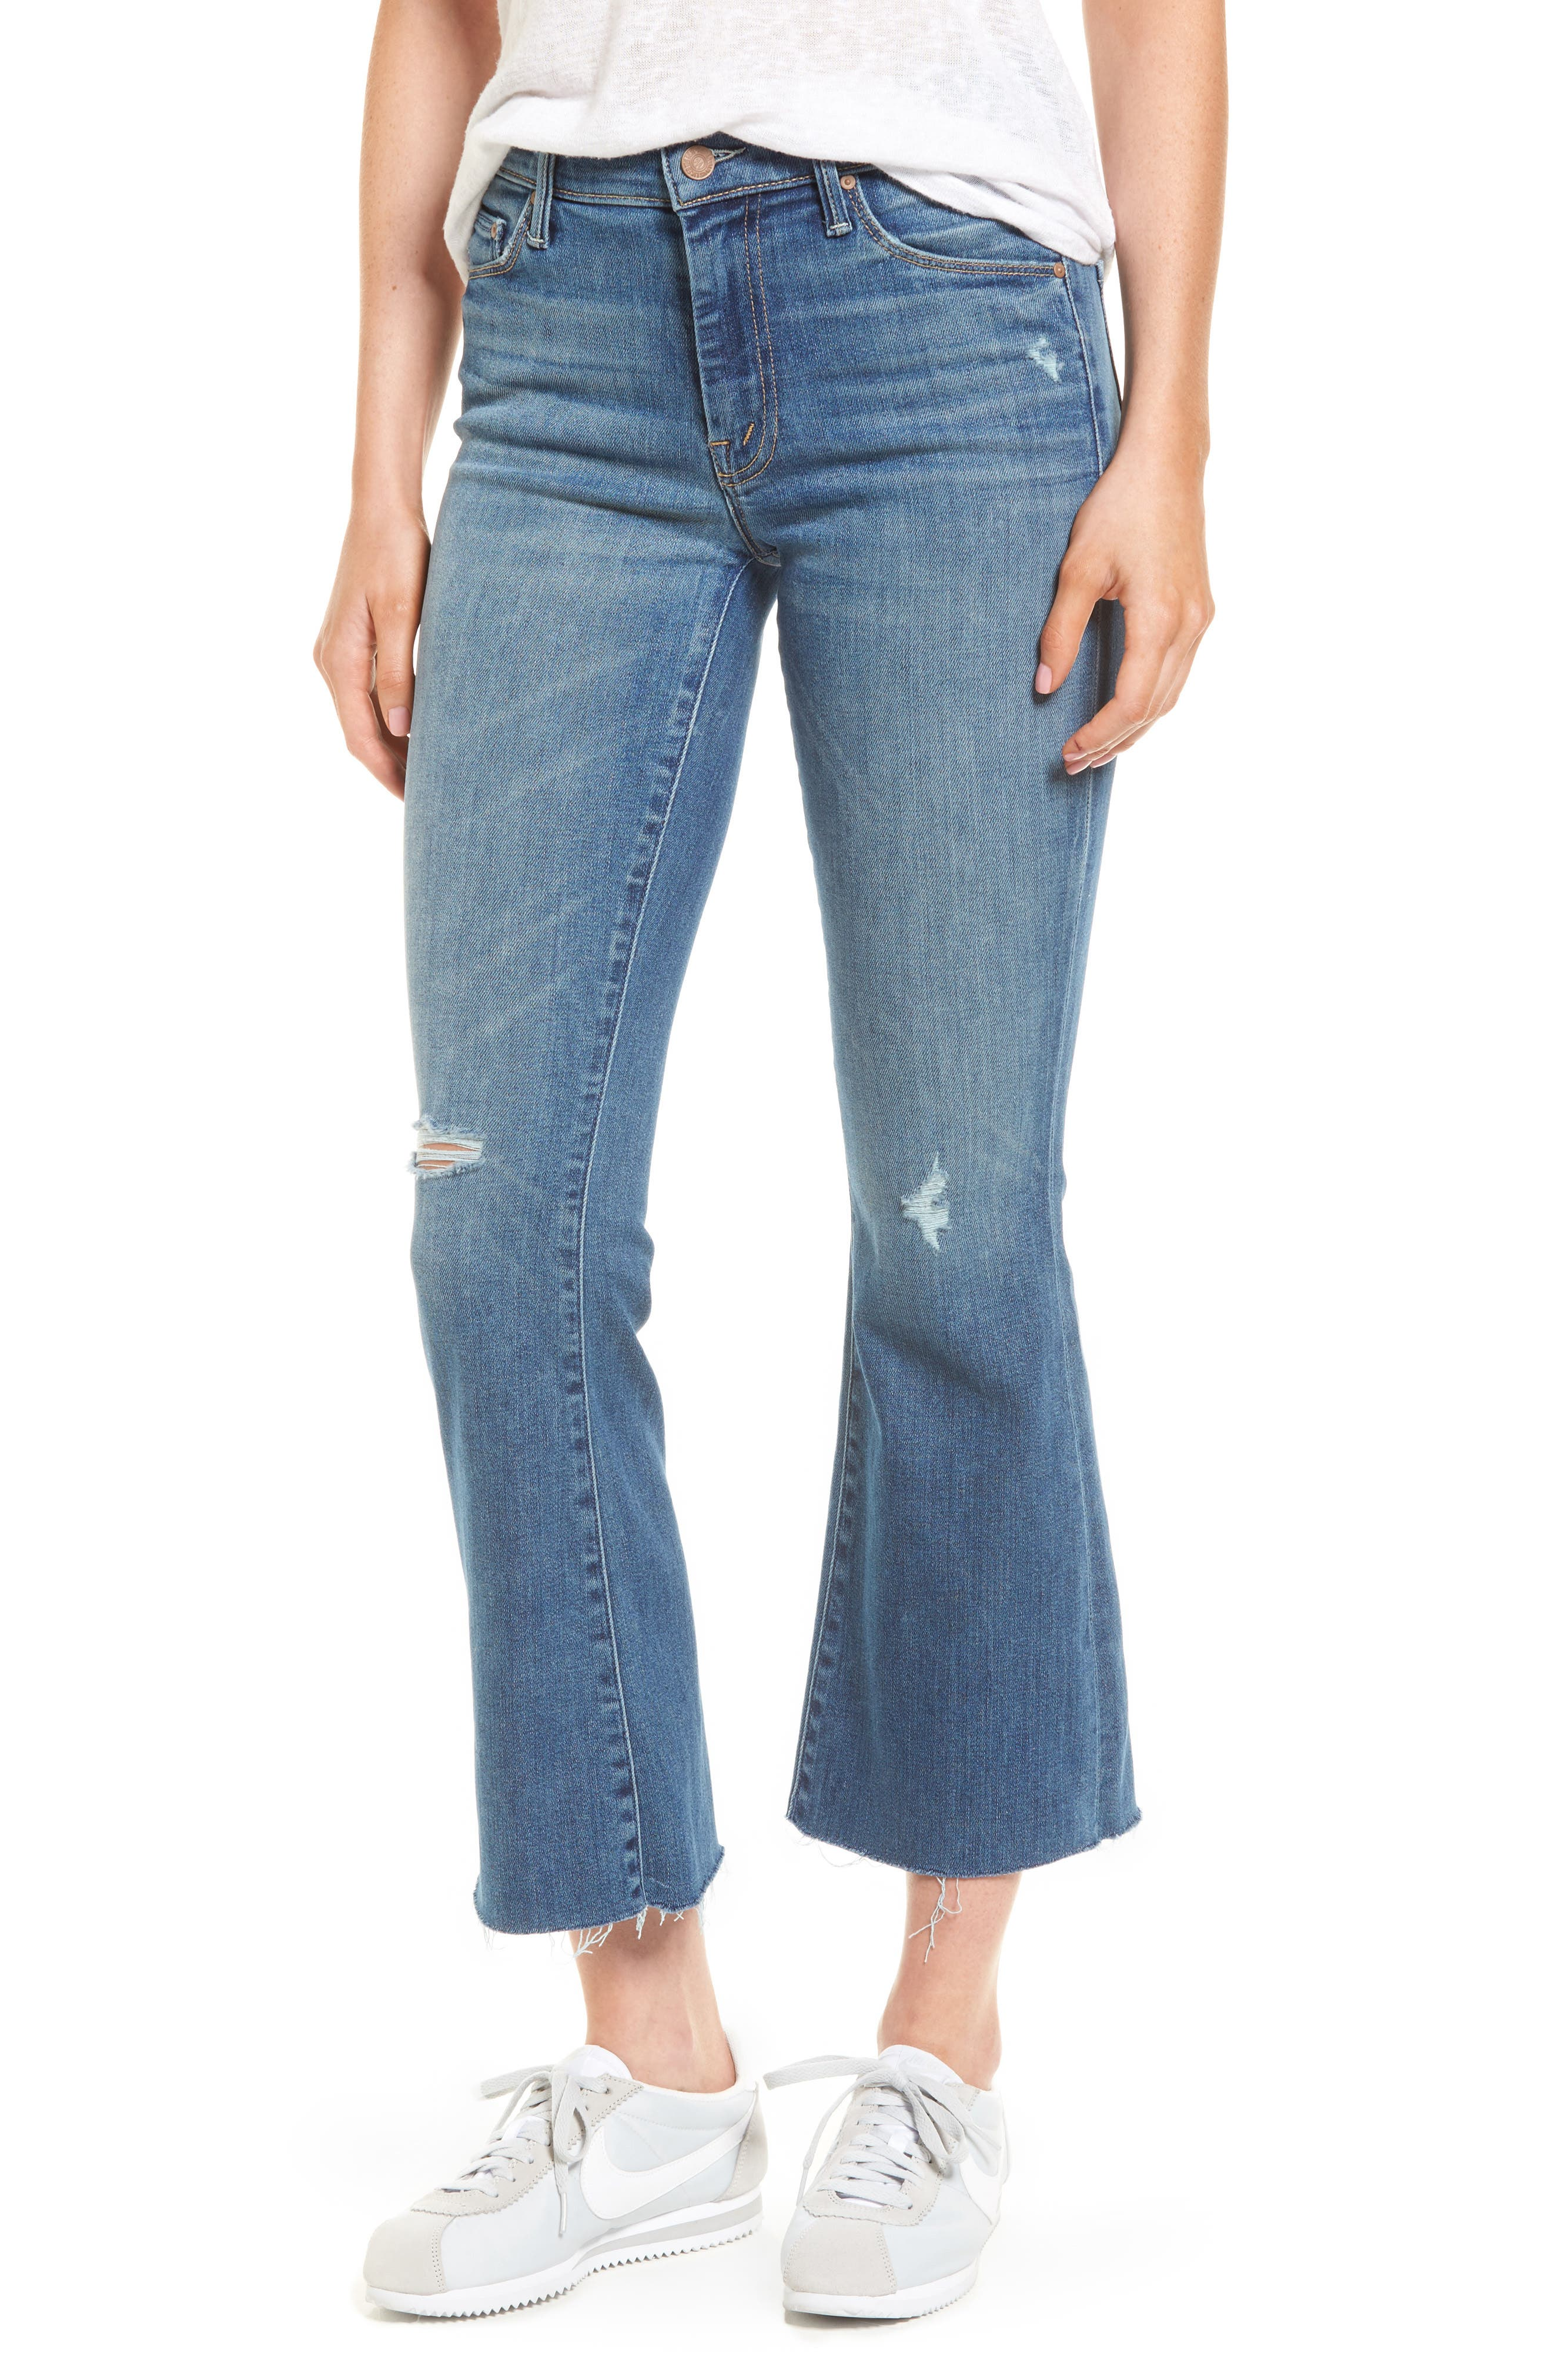 MOTHER, Frayed Ankle Jeans, Main thumbnail 1, color, 420